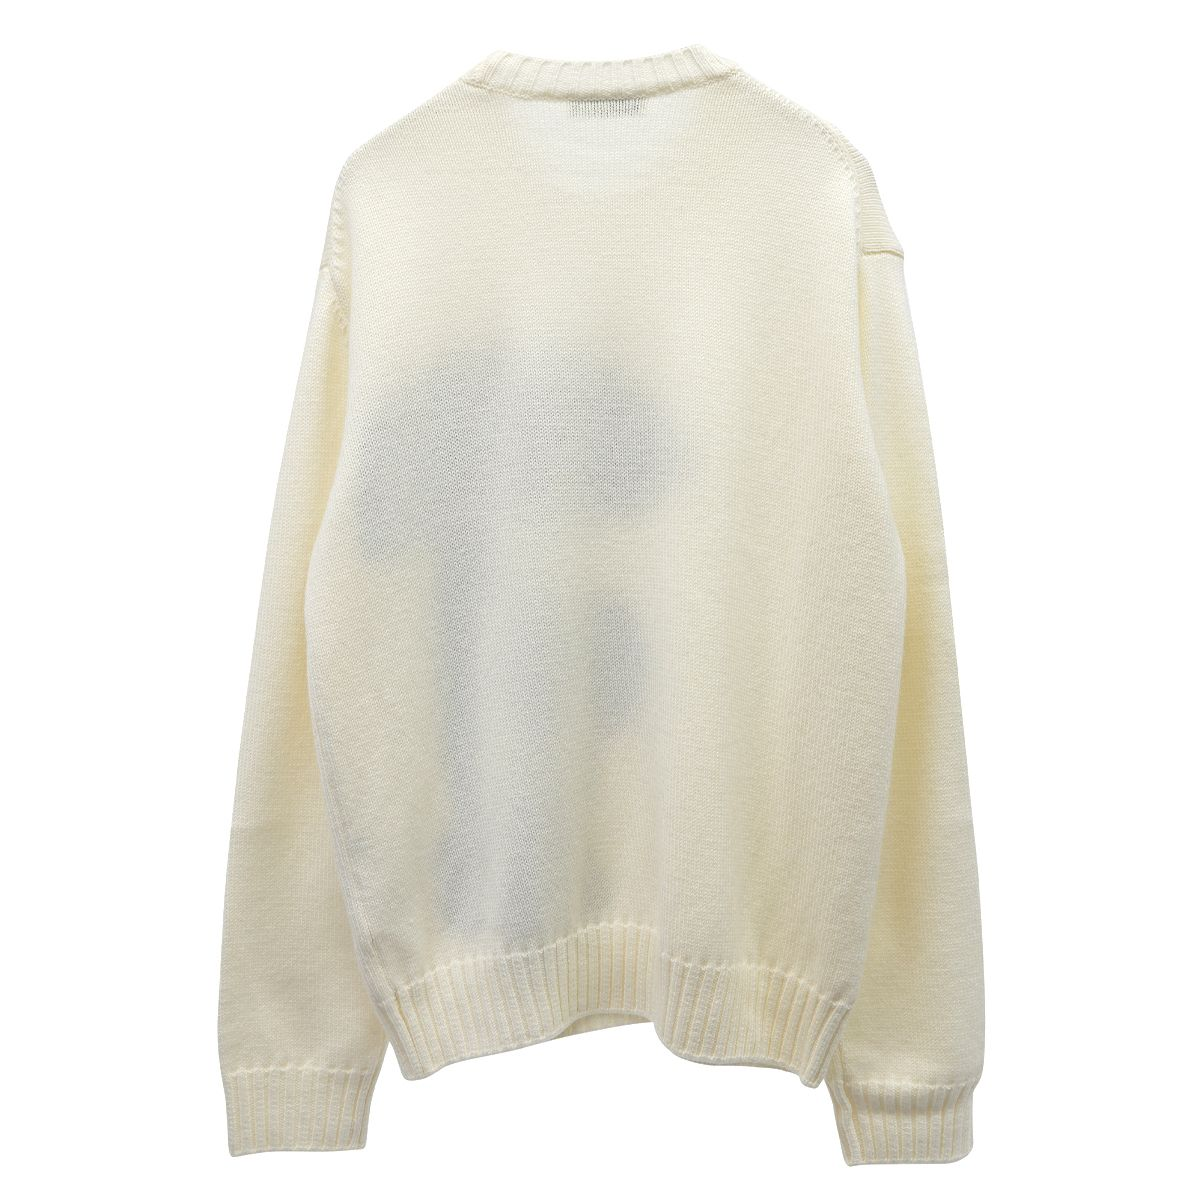 JW Anderson SWEATER / 001